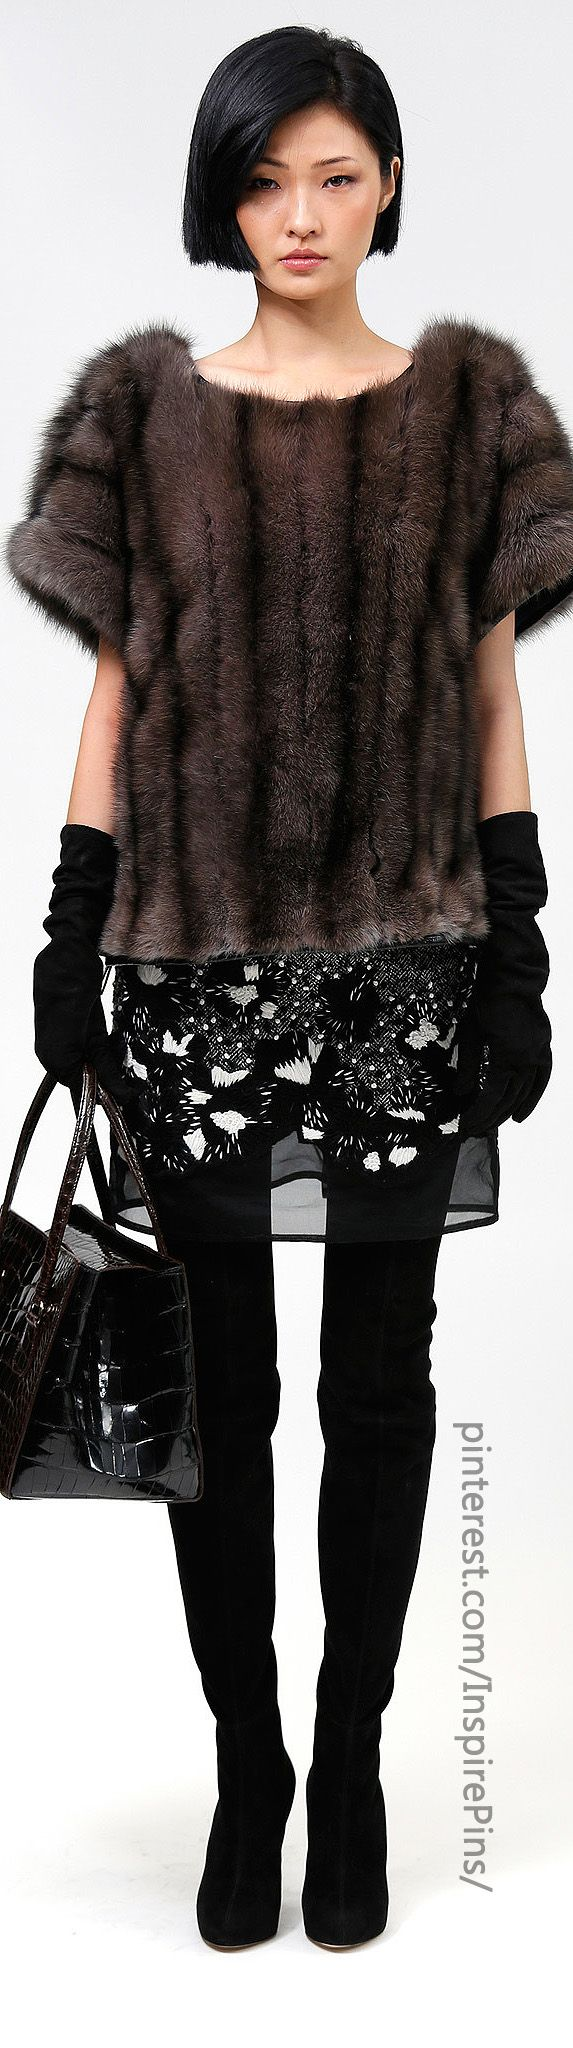 Pre-Fall 2014 Dennis Basso - Unless the fur in this outfit is faux the whole thing is a study in vanity. When will the ignorant women who buy this crap learn it looked better on the original owner? The designers are nothing more than animal abusers.